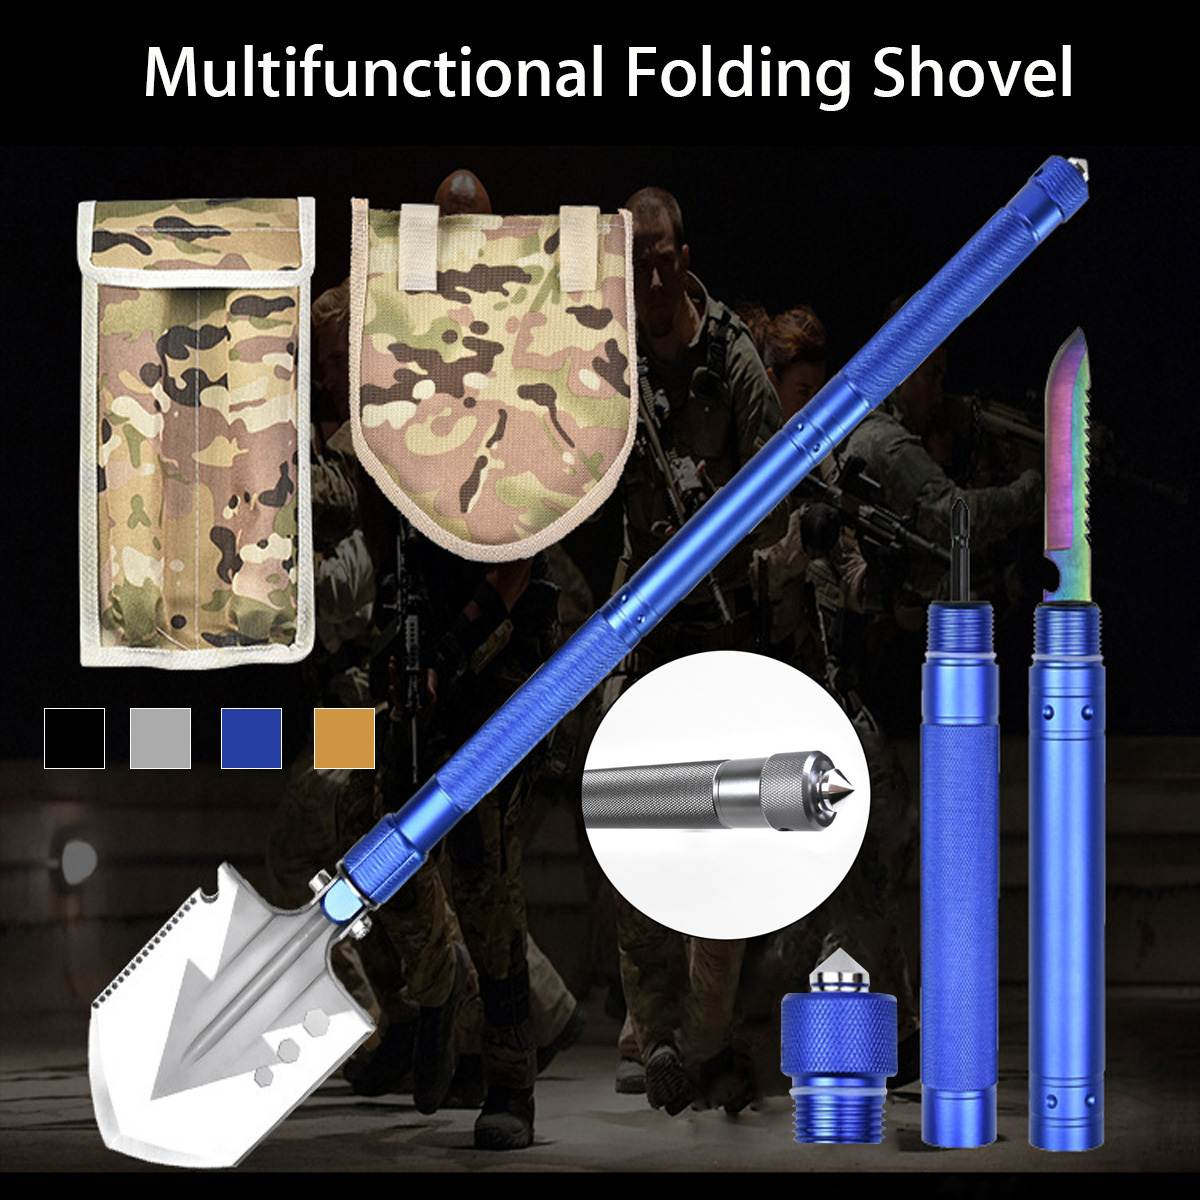 Multifunctional Military Tactical Folding Shovel Outdoor Camping Portable Survival Emergency Hand Tools Set